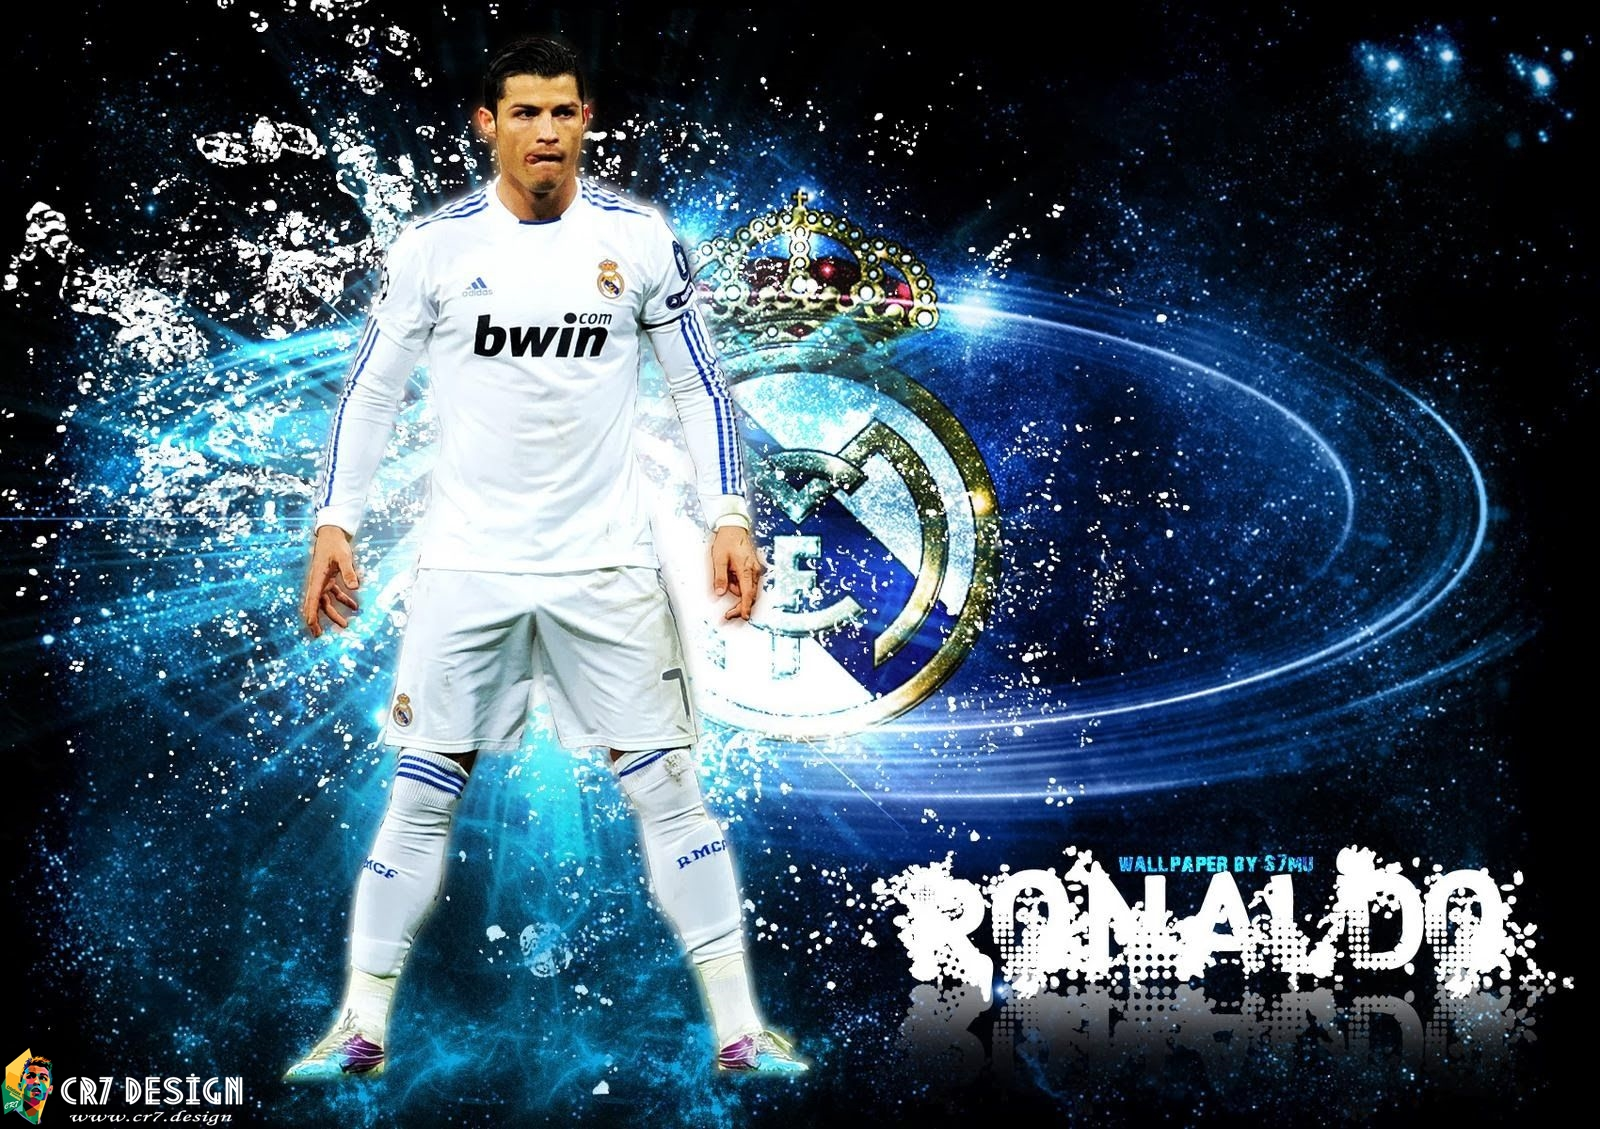 ciristiano-ronaldo-wallpaper-design-94